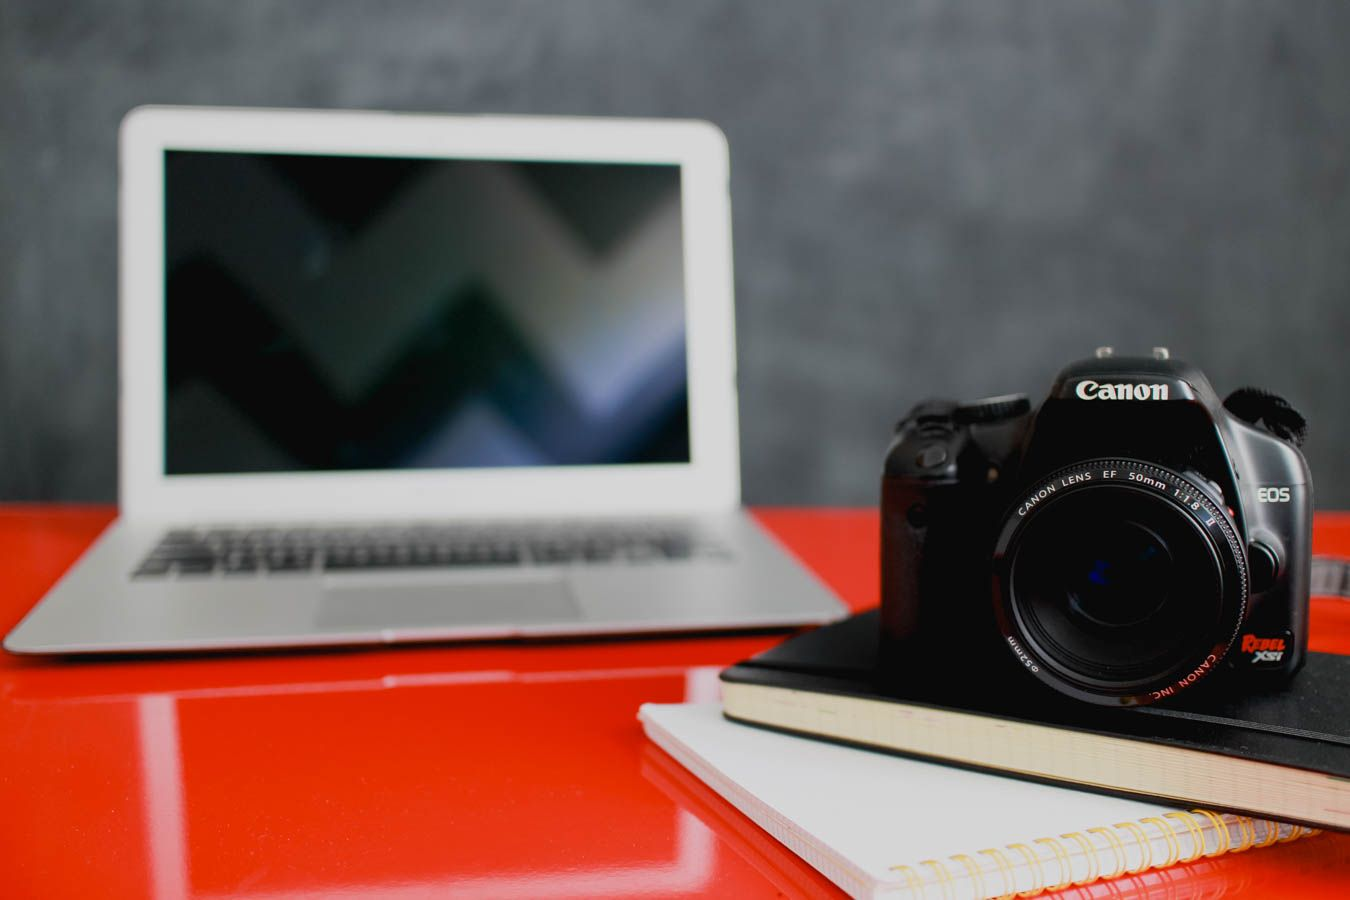 create your own stock photo library #photolibrary